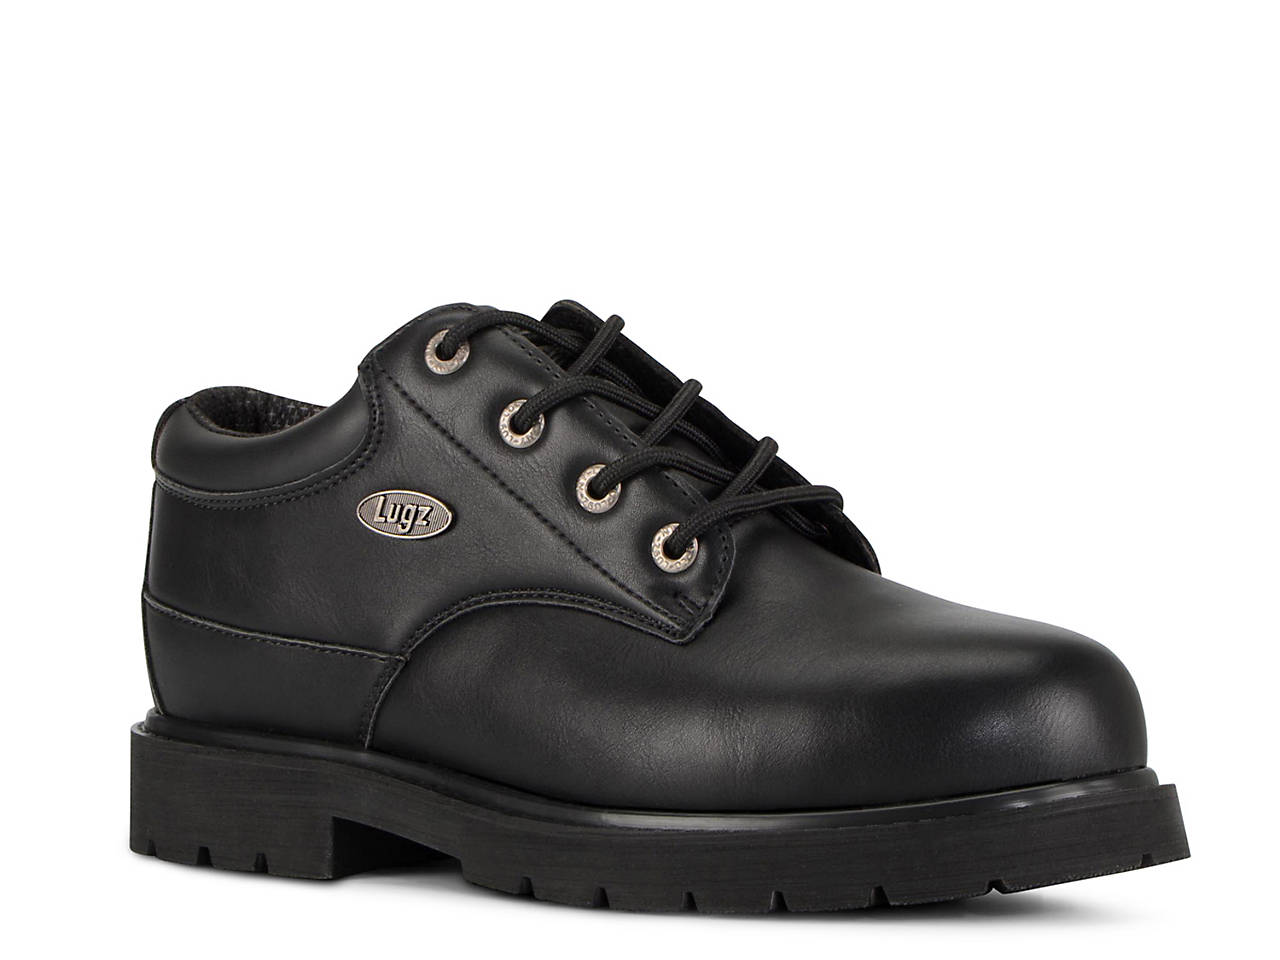 71579e04fbf Drifter Lo Steel Toe Work Shoe